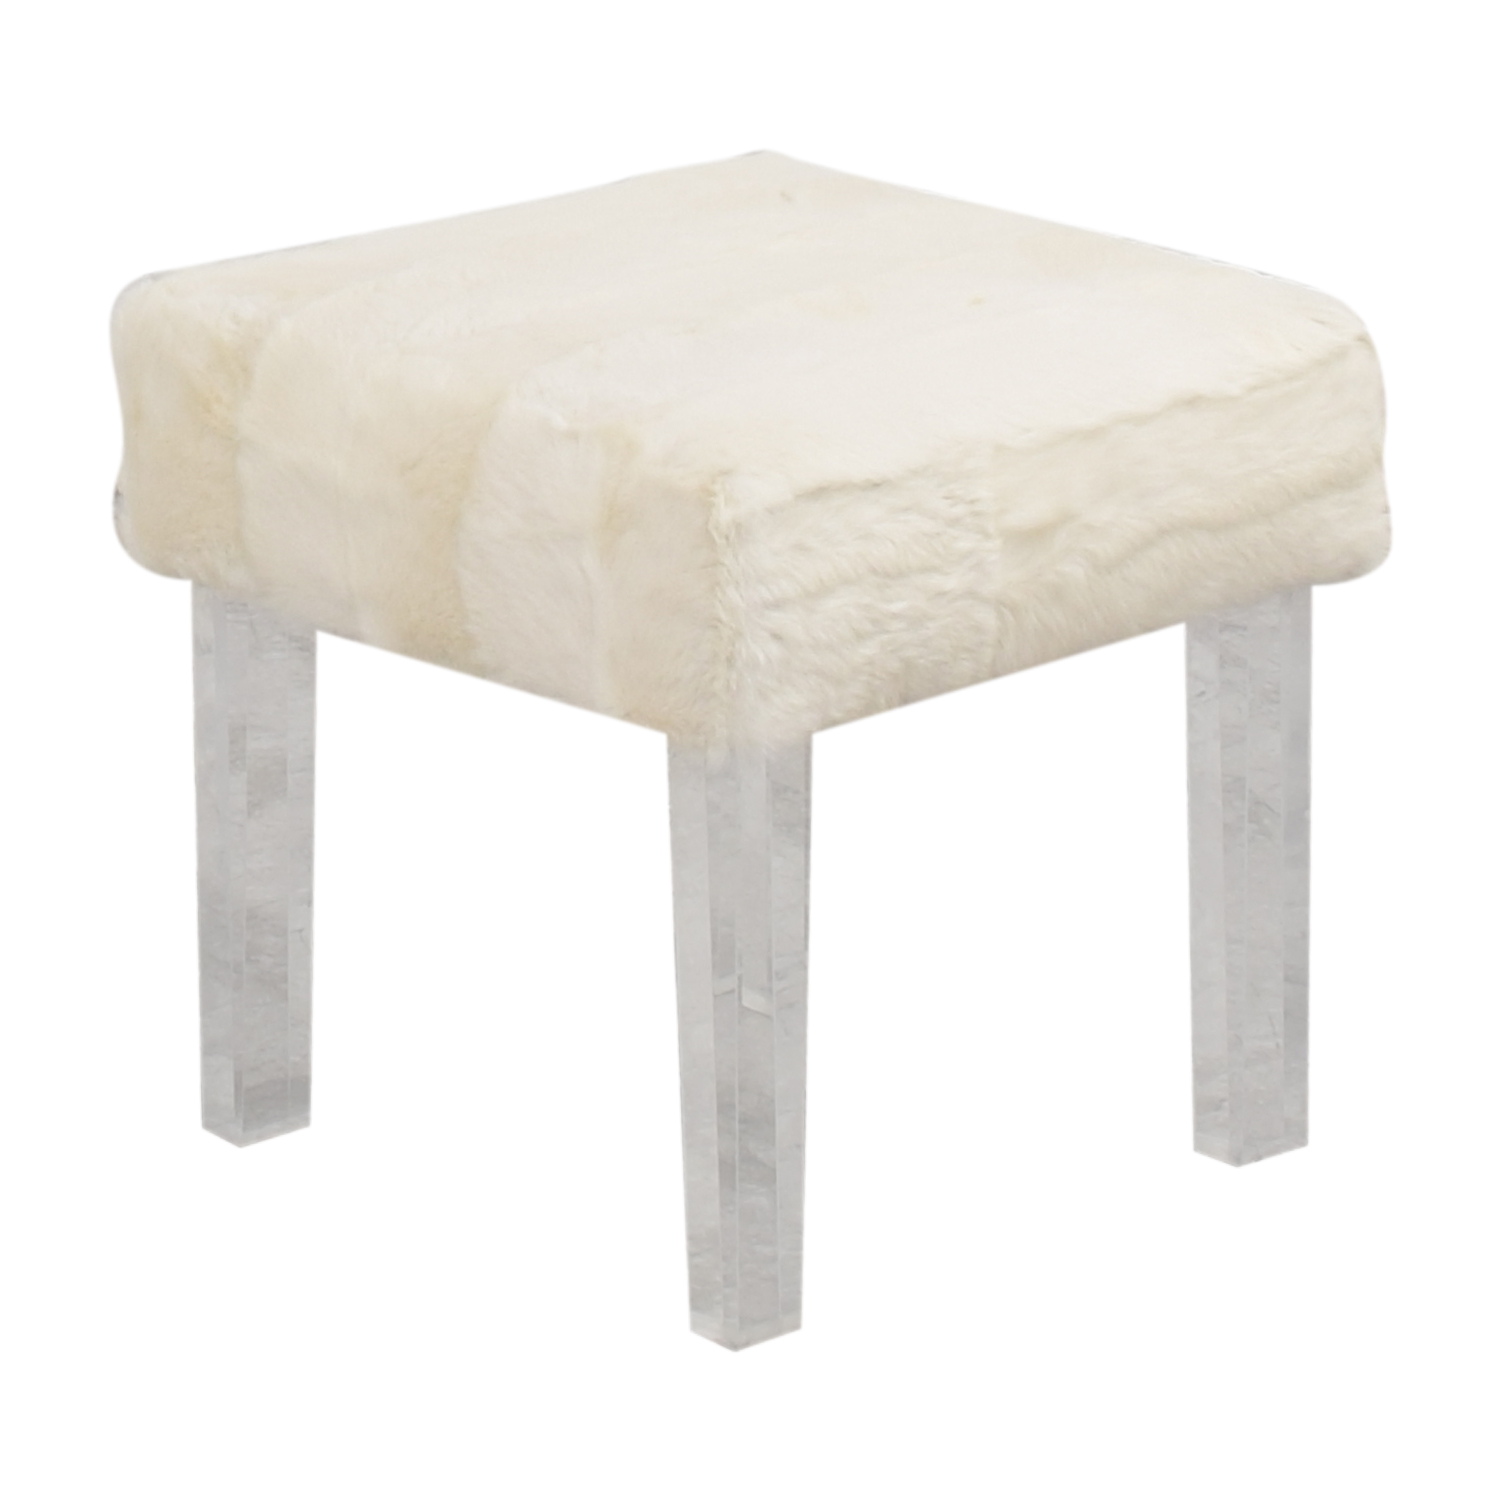 Outpost Original Lucite Bench with Fur / Stools